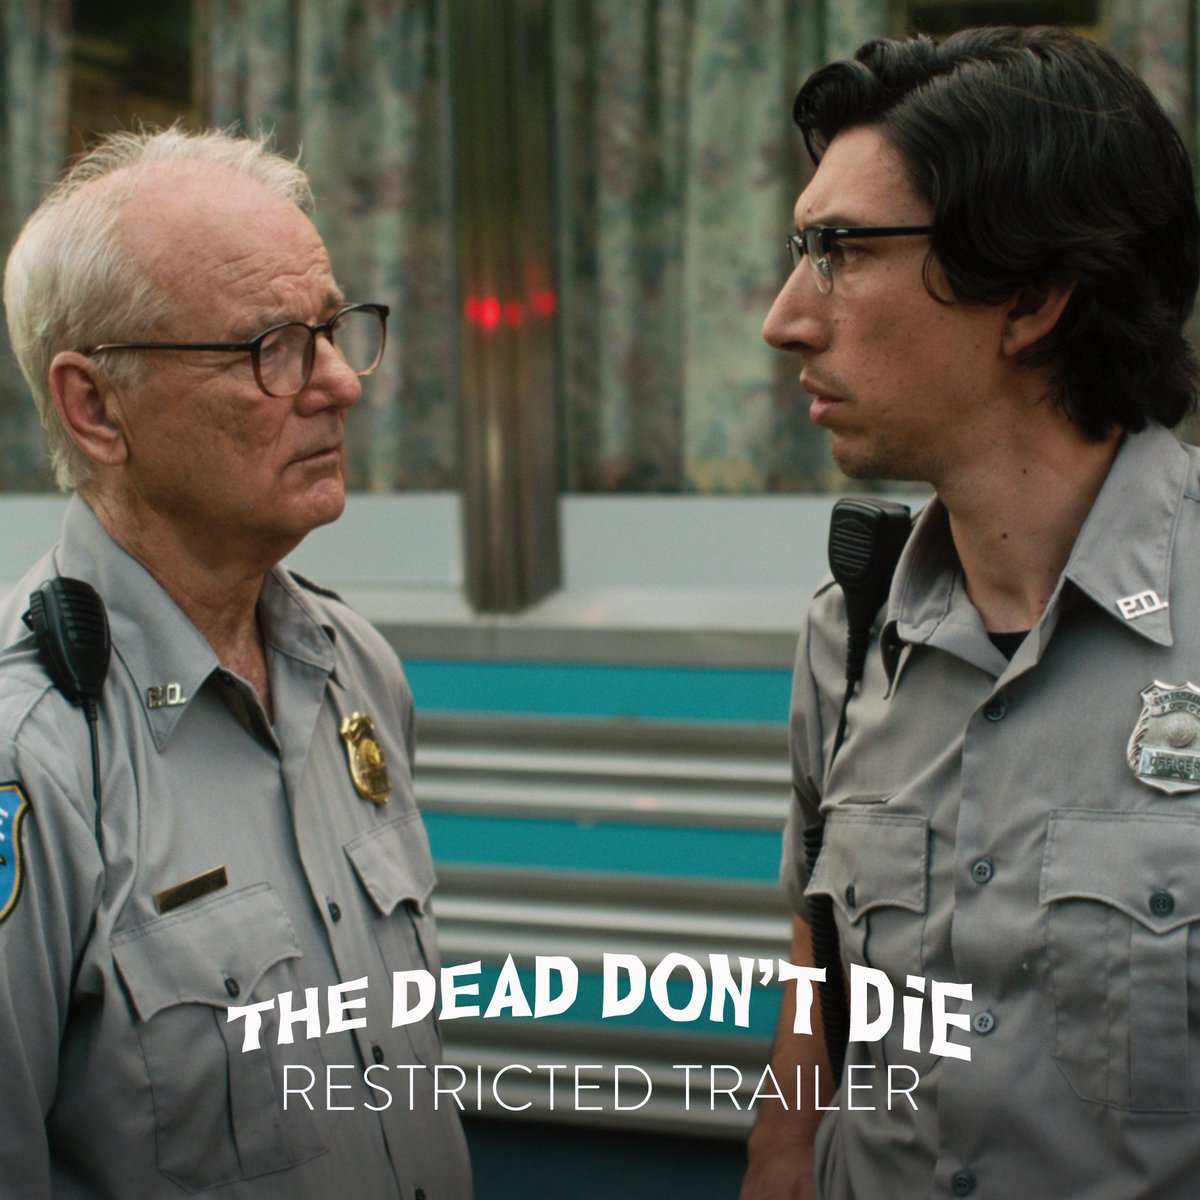 This summer, you gotta kill the head. 🧟♂️ Watch the restricted trailer for @JimJarmusch's #TheDeadDontDie starring Bill Murray and Adam Driver. In theaters June 14th.